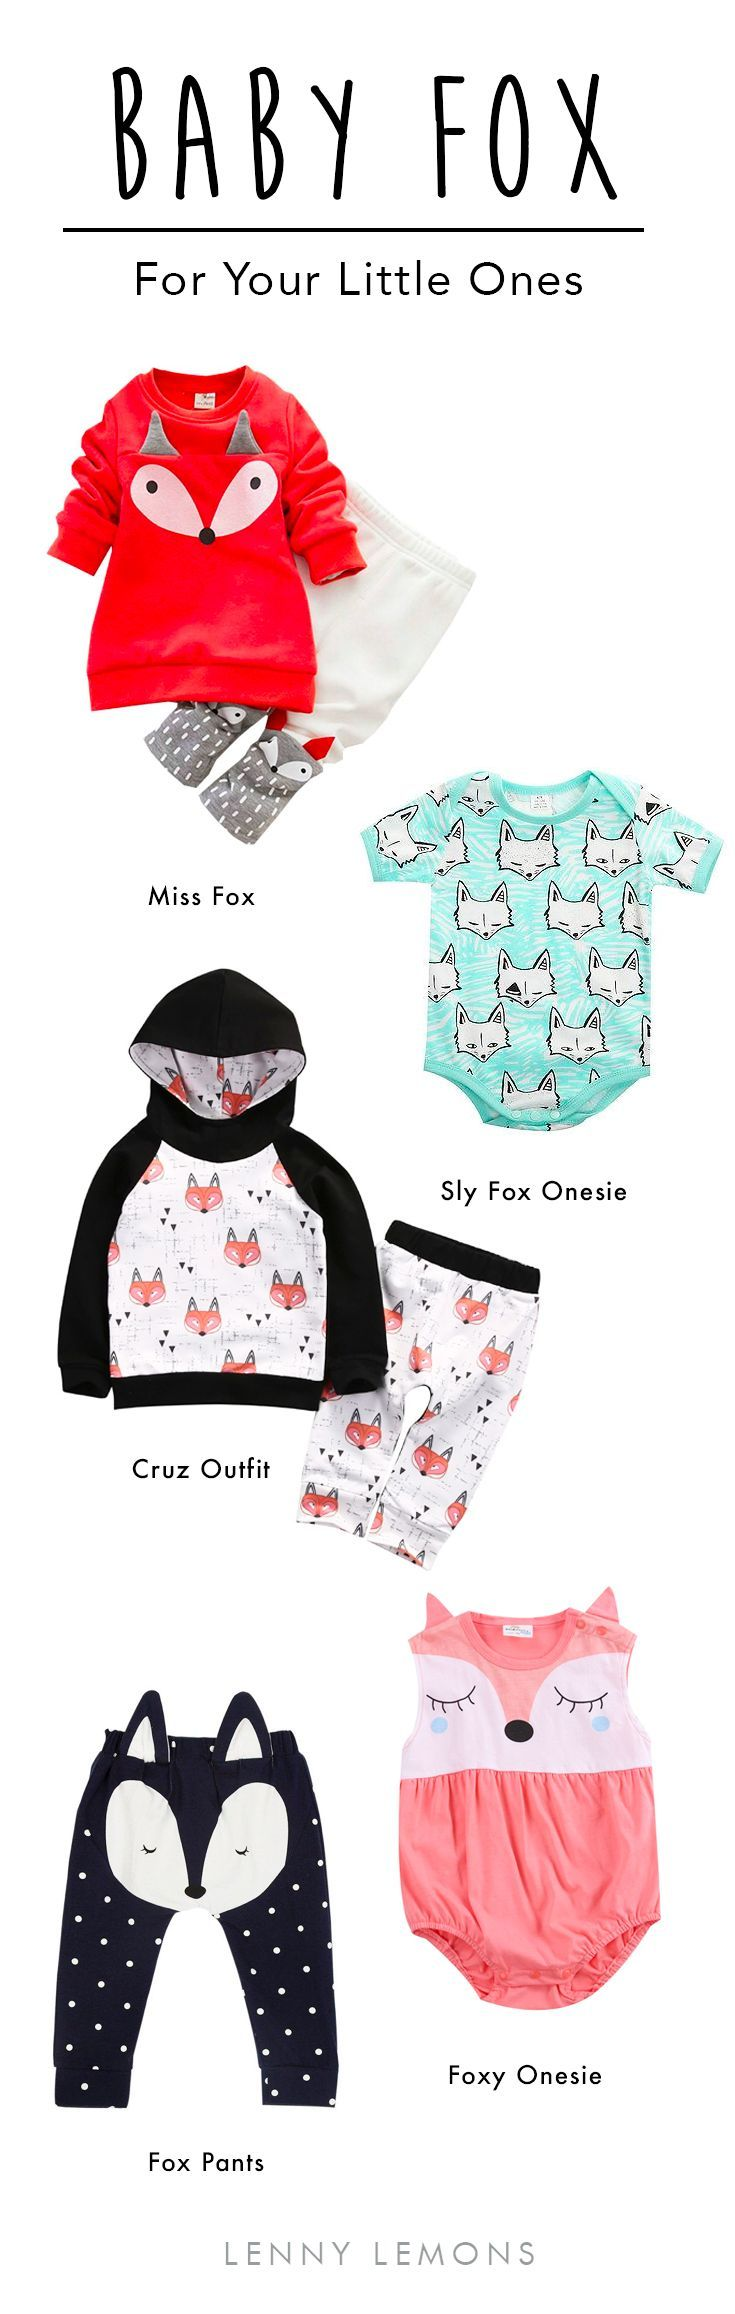 1f67110b34d FREE USA SHIPPING! Cutest baby clothes for your little ones, baby ...